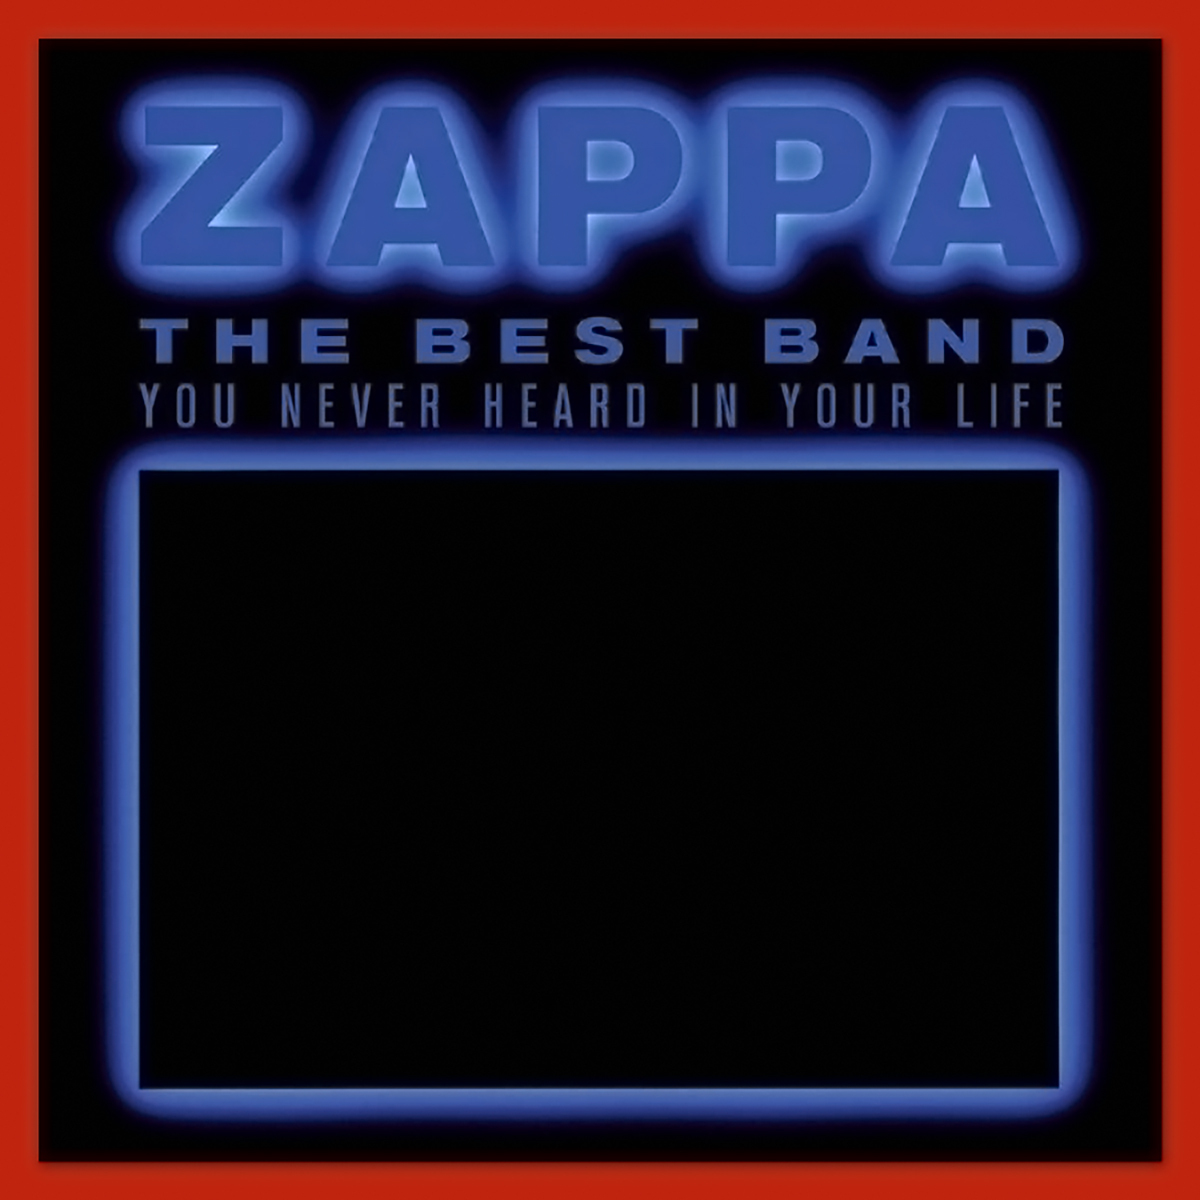 Frank Zappa - The Best Band You Never Heard In Your Life (1991)